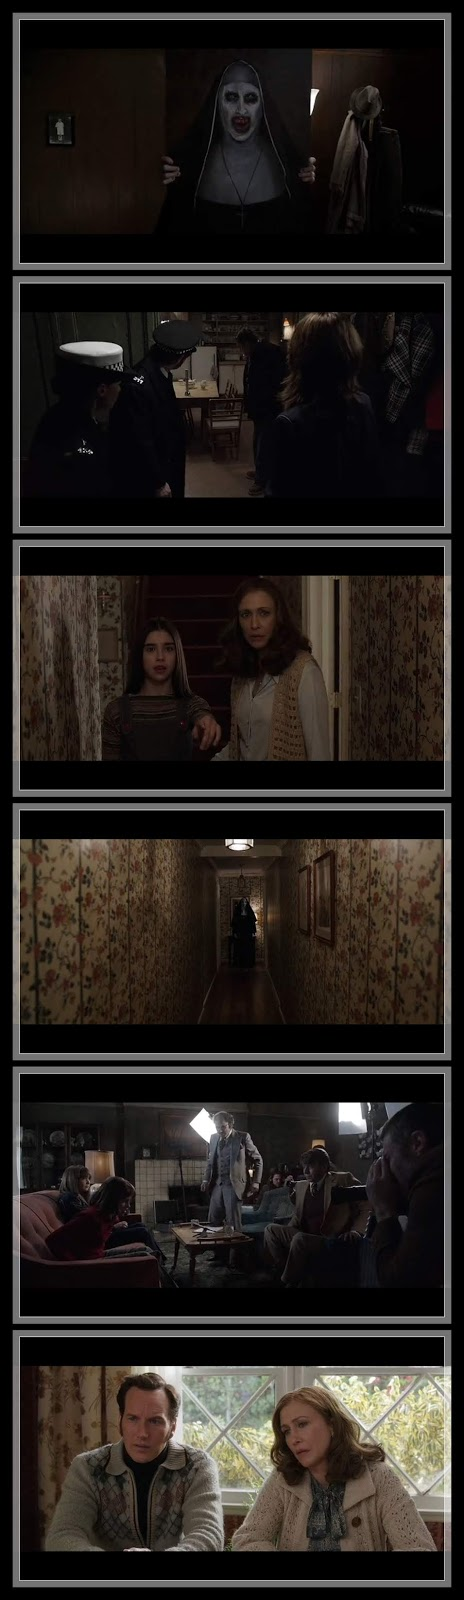 conjuring 2 full movie download in hindi 720p worldfree4u